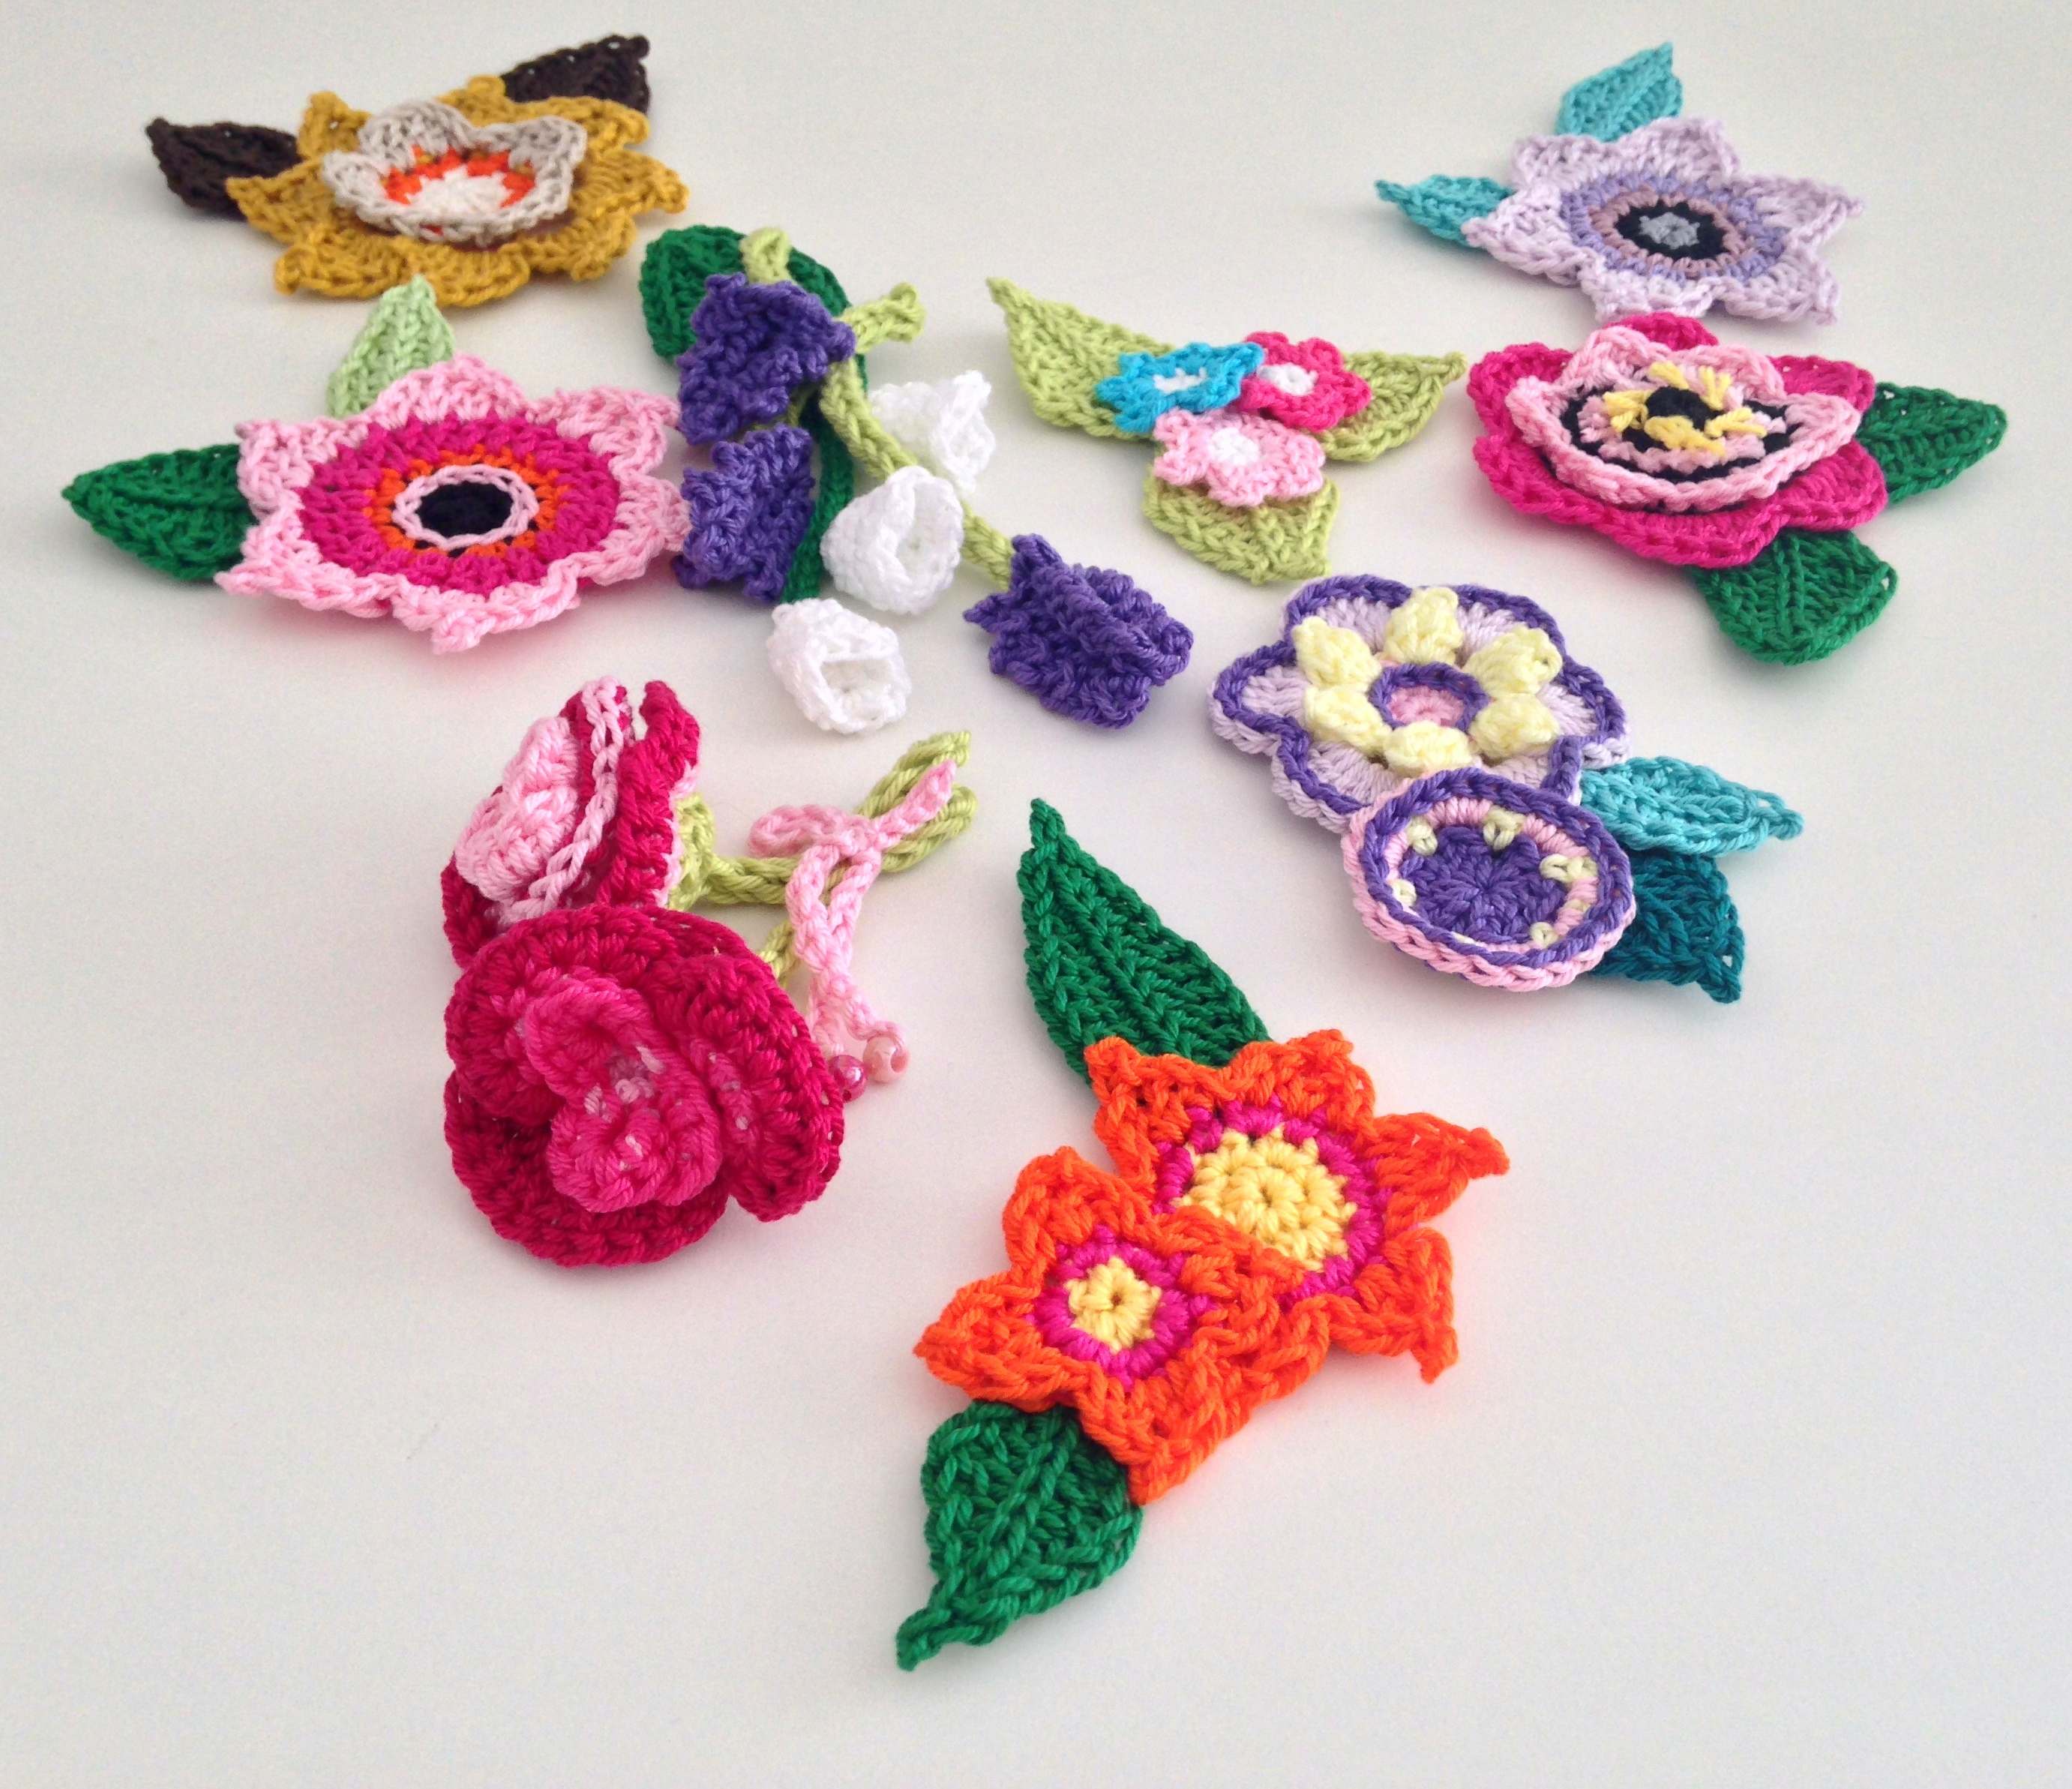 maRRose - CCC: Flower brooches